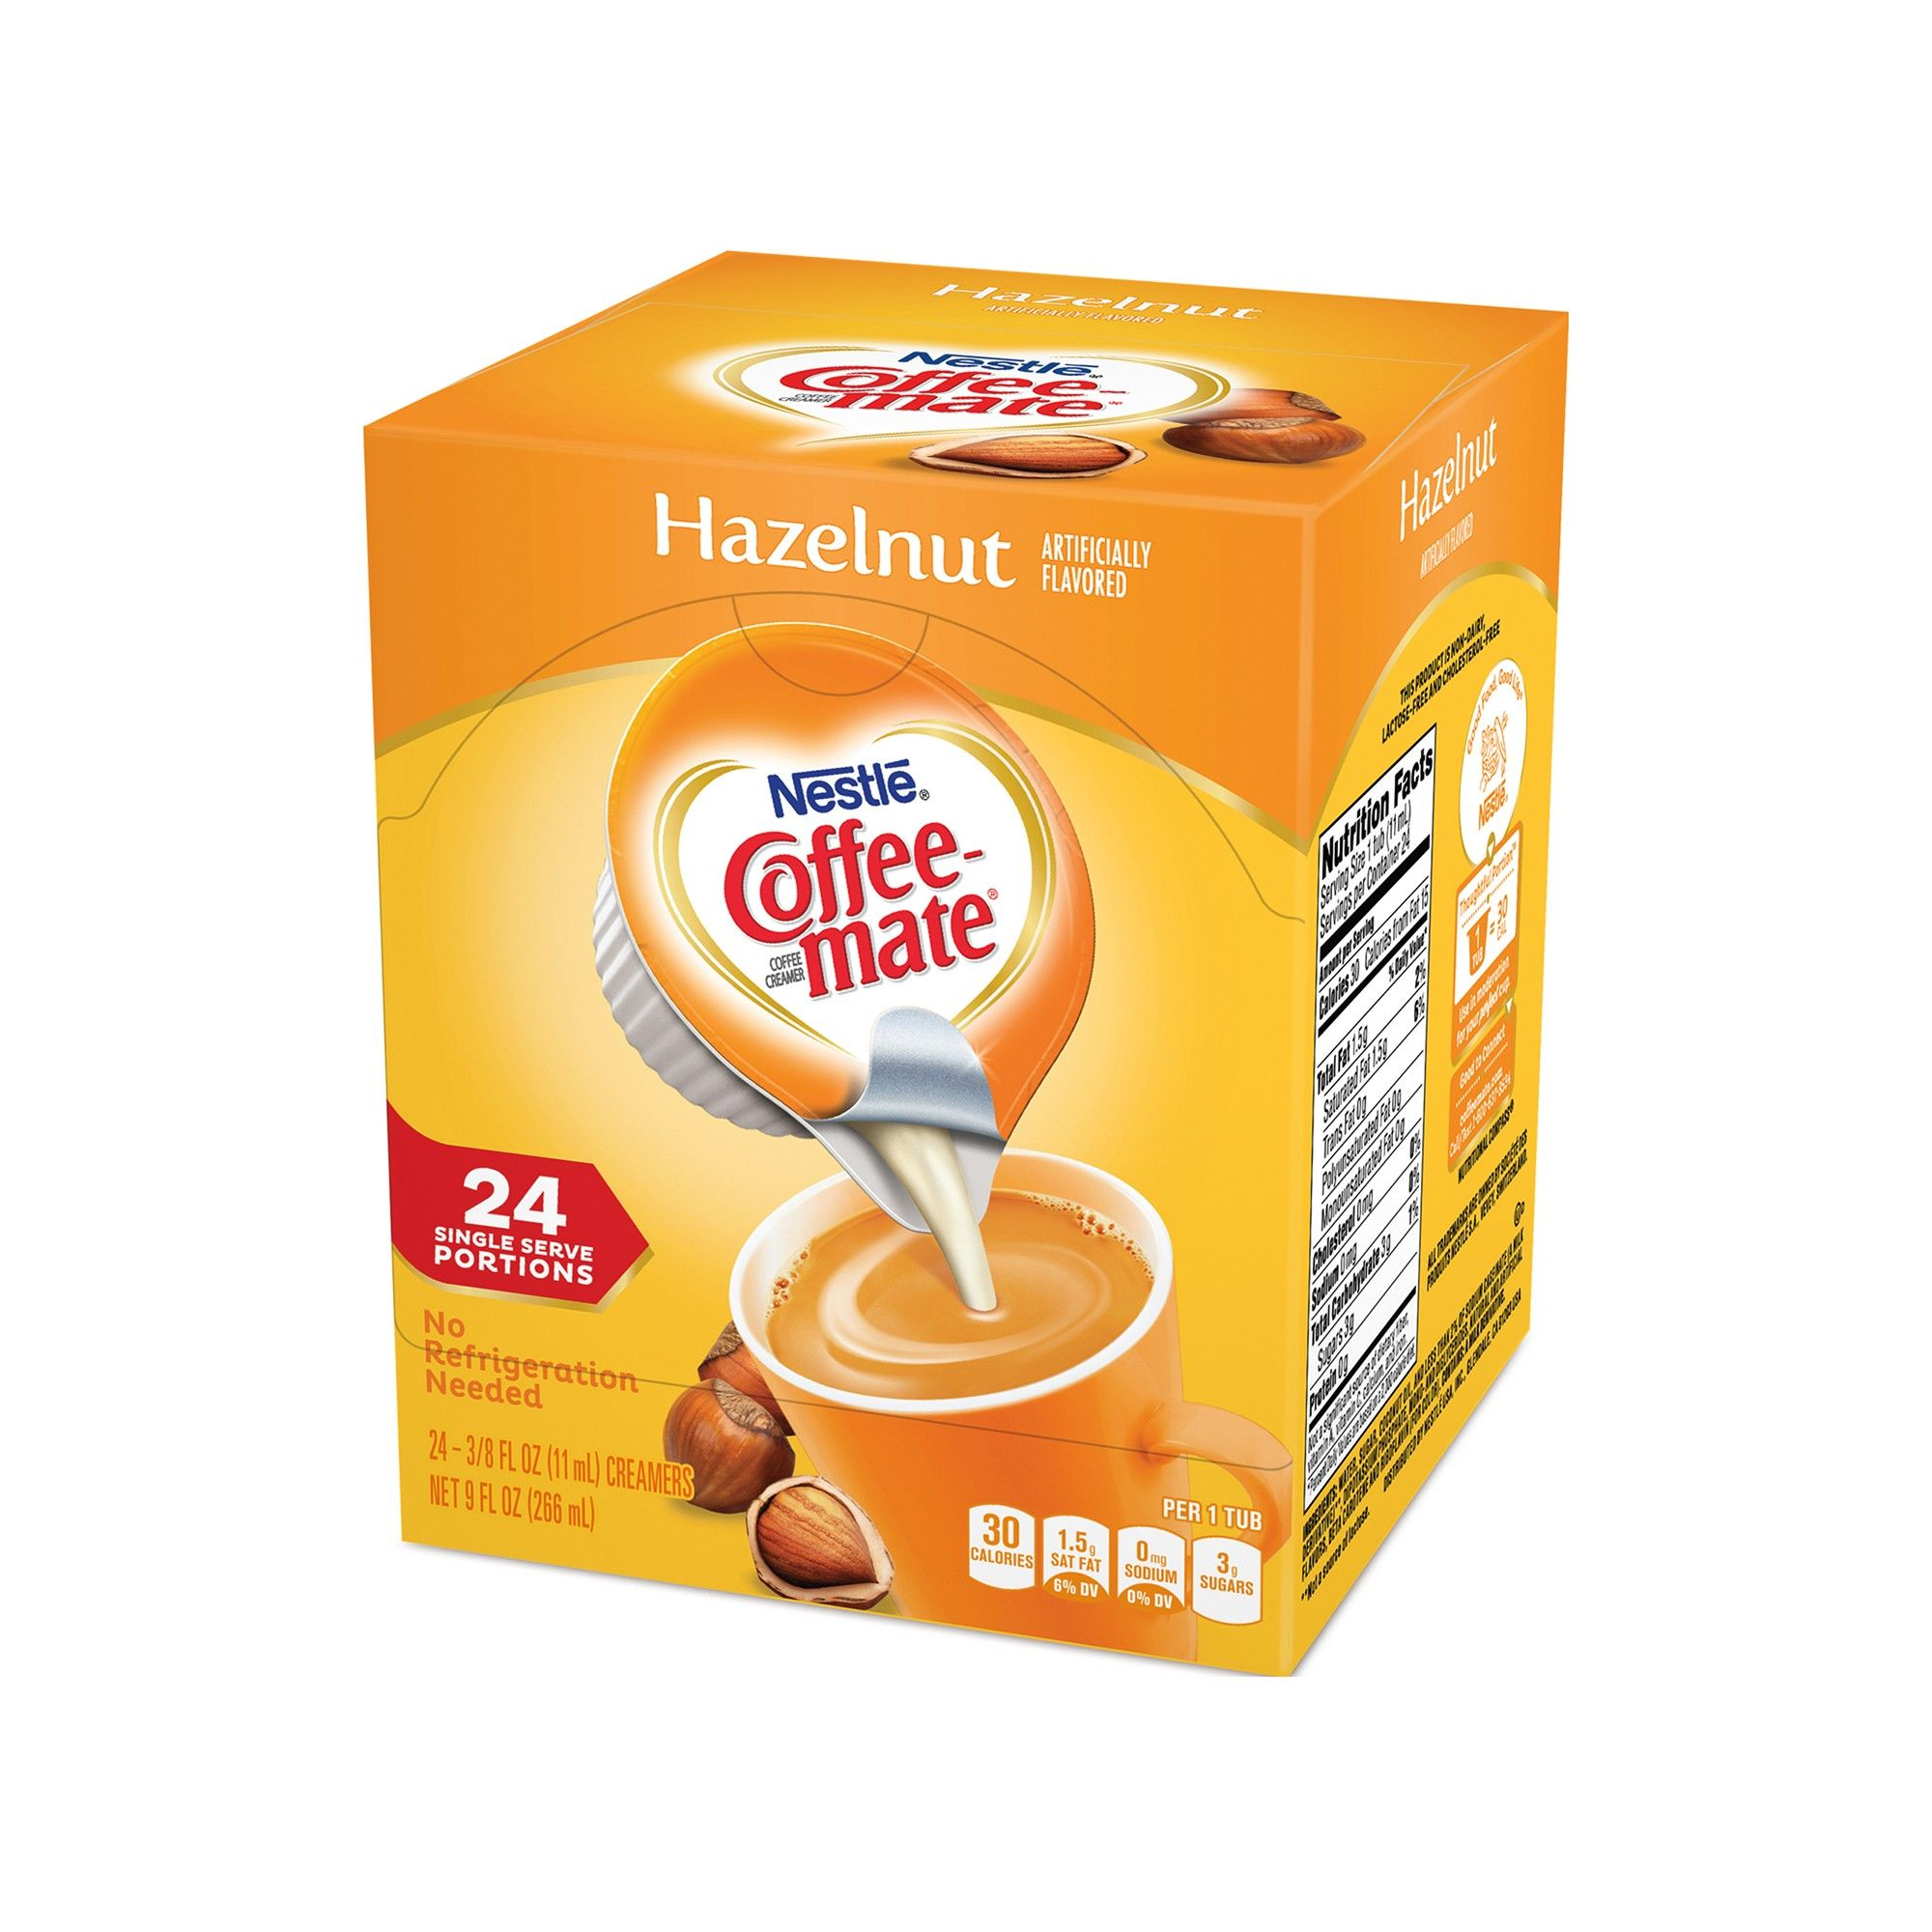 Nestle CoffeeMate Hazelnut Singles Coffee Creamer 24ct